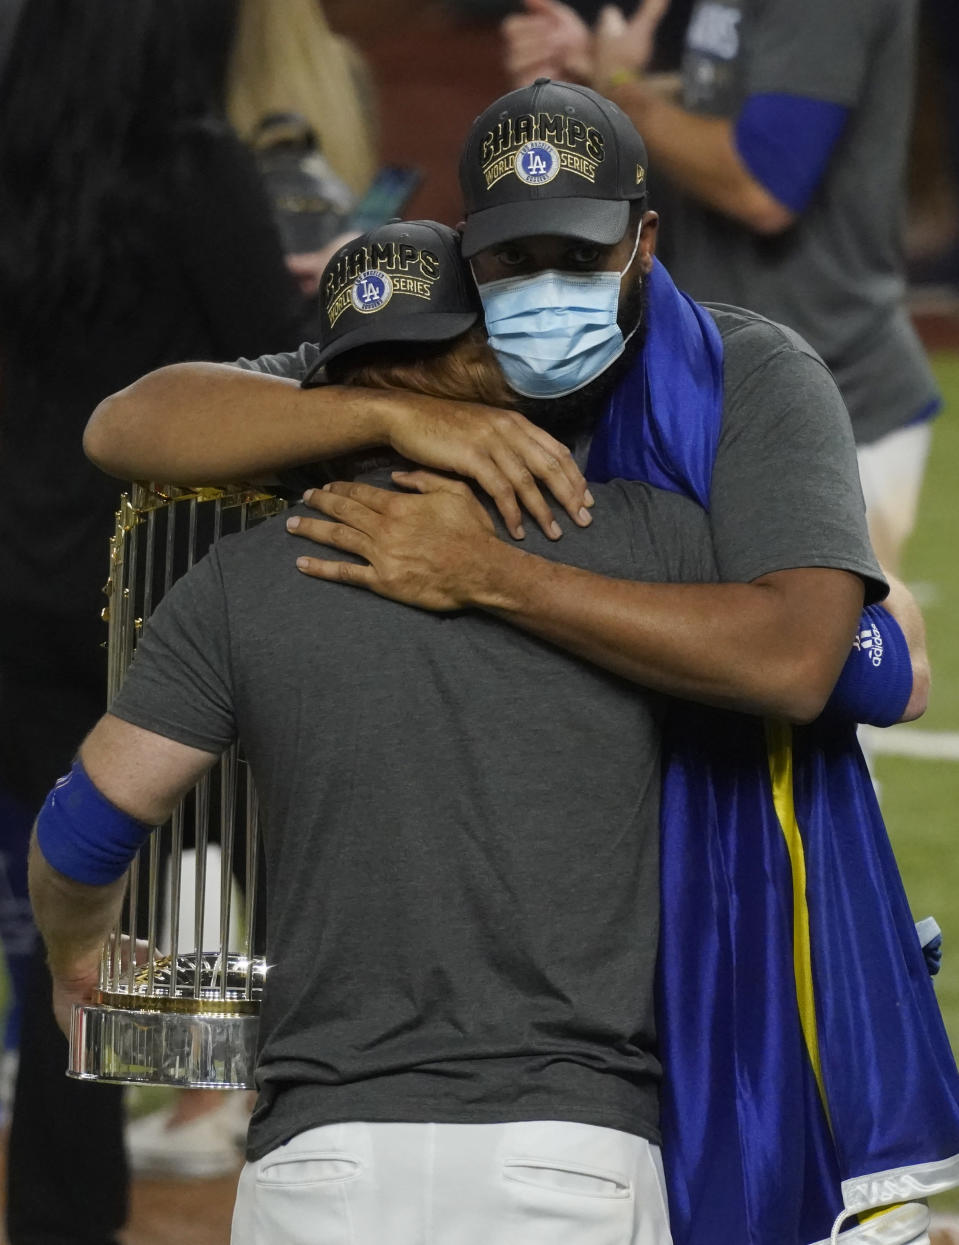 Los Angeles Dodgers third baseman Justin Turner hugs relief pitcher Kenley Jansen after defeating the Tampa Bay Rays 3-1 to win the baseball World Series in Game 6 Tuesday, Oct. 27, 2020, in Arlington, Texas. (AP Photo/Tony Gutierrez)